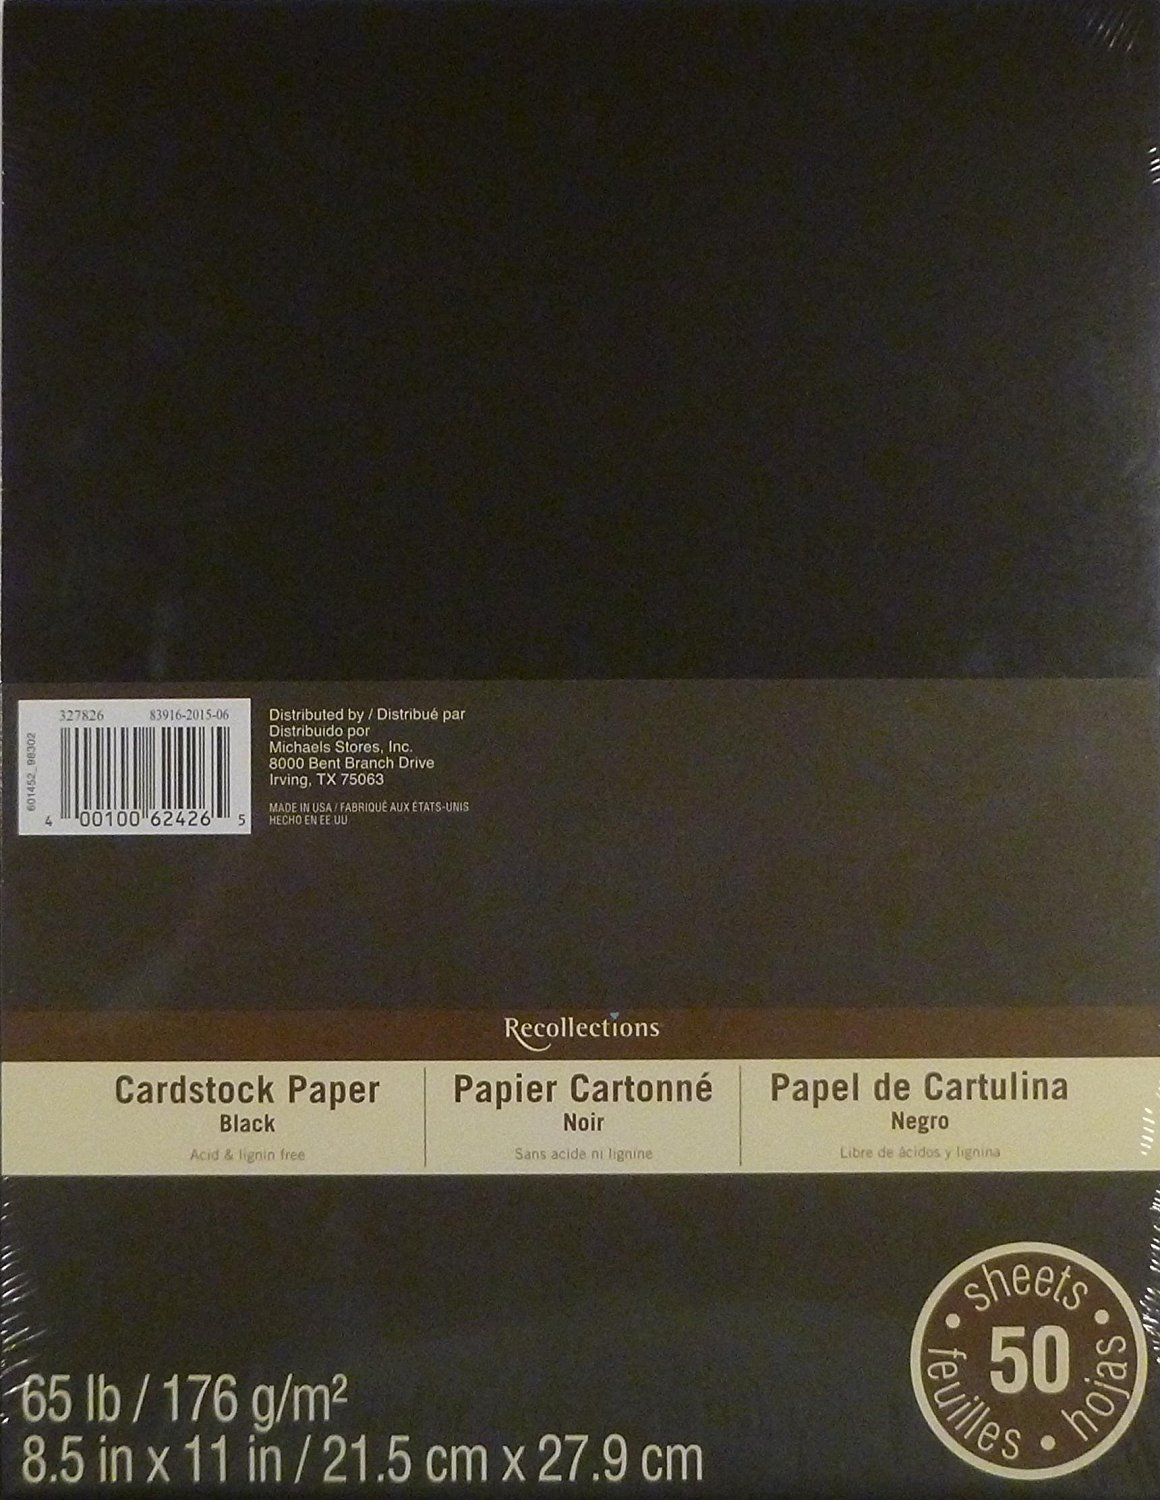 Recollections Cardstock Paper 8.5 x 11-50 Sheets - Black (150)